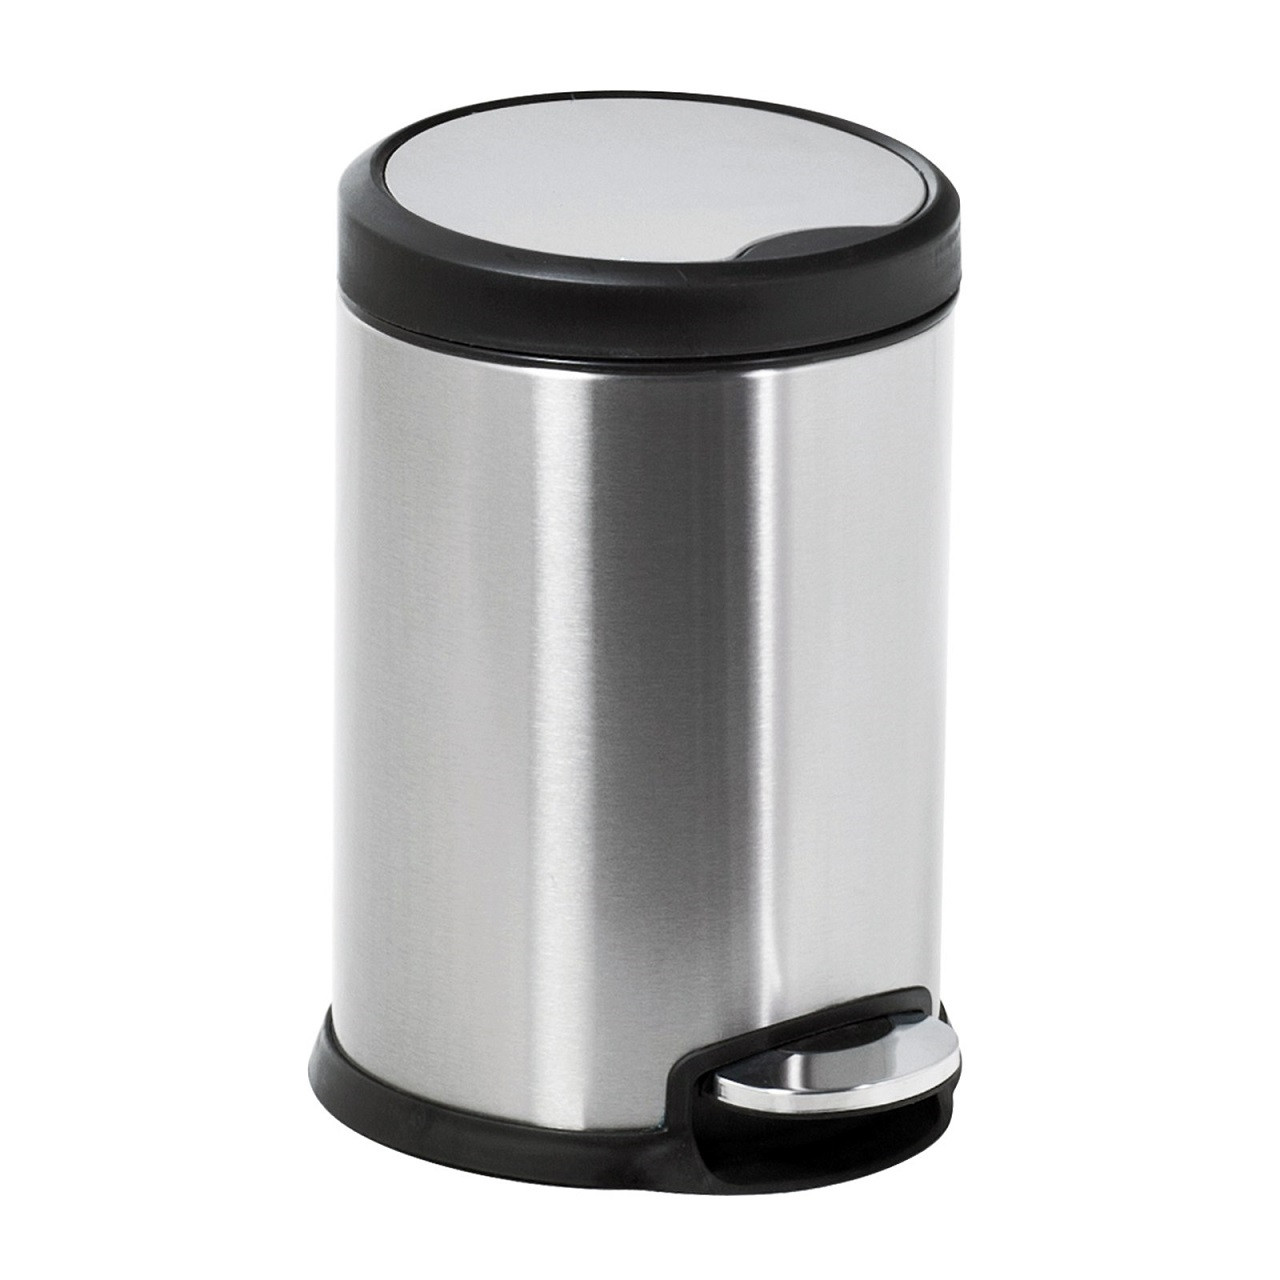 Aero Collection Stainless Steel Satin 3 Litre Pedal Bin